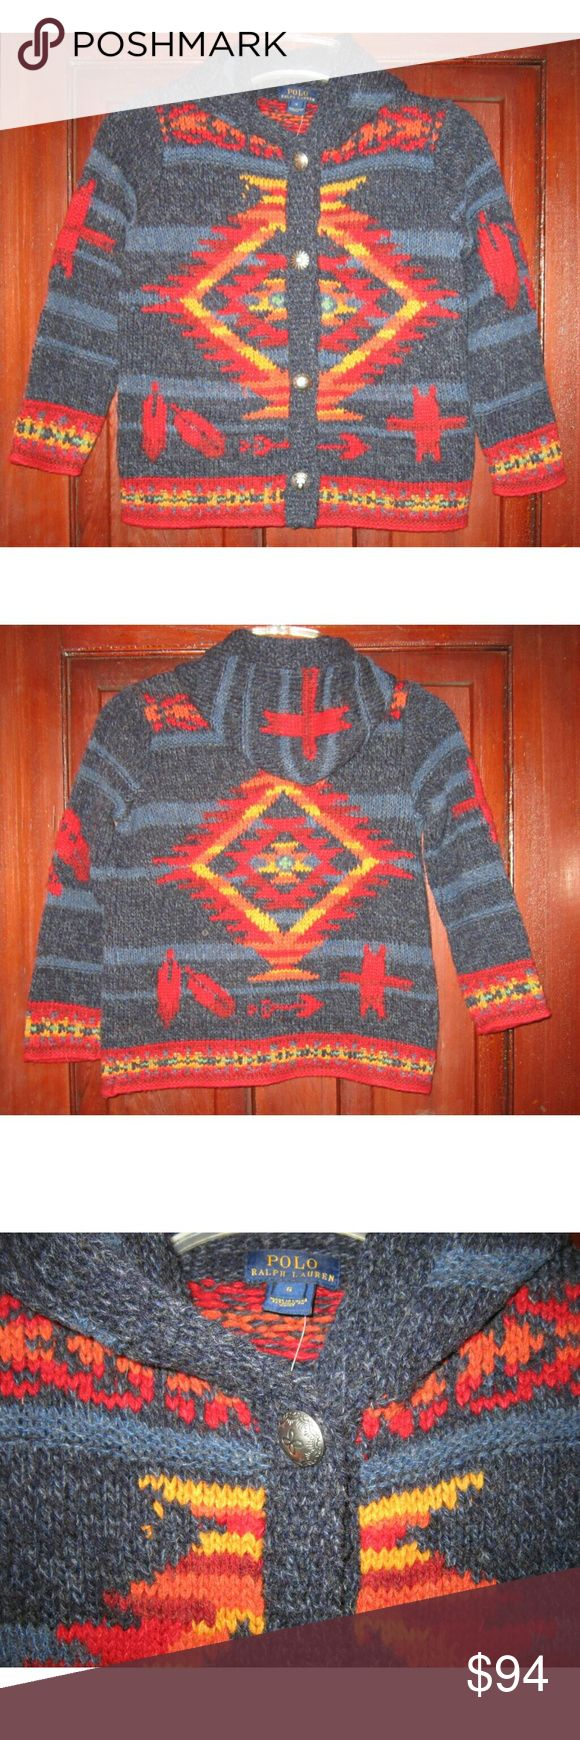 """Polo Ralph Lauren 6 Cardigan Sweater Indian Boys Beautifully made new with tags button down cardigan sweater from Polo RL in size boys 6.  Indian blanket, Southwestern, Navajo design that RL is famous for in mostly wool.  Hood, long sleeves, engraved metal buttons.  New and never worn. 17""""/34"""" chest buttoned and with give in the knit,   20"""" long 83% wool, 8% other fibers, 7% lambs wool Polo by Ralph Lauren Other"""